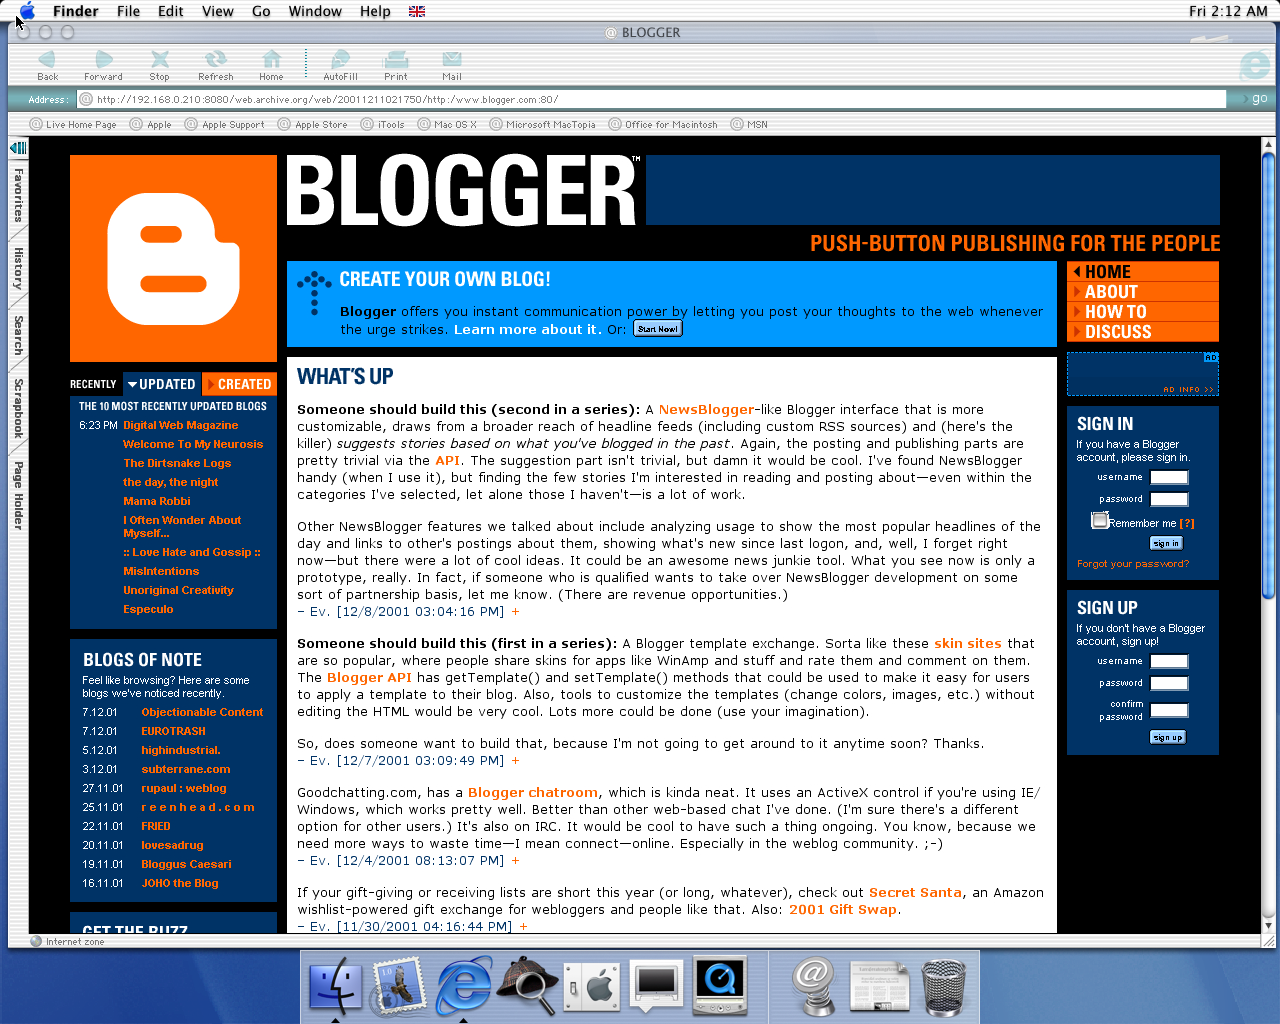 OS X 10.0 PPC with Microsoft Internet Explorer 5.1 for Mac Preview displaying a page from Blogger archived at December 11, 2001 at 02:17:50